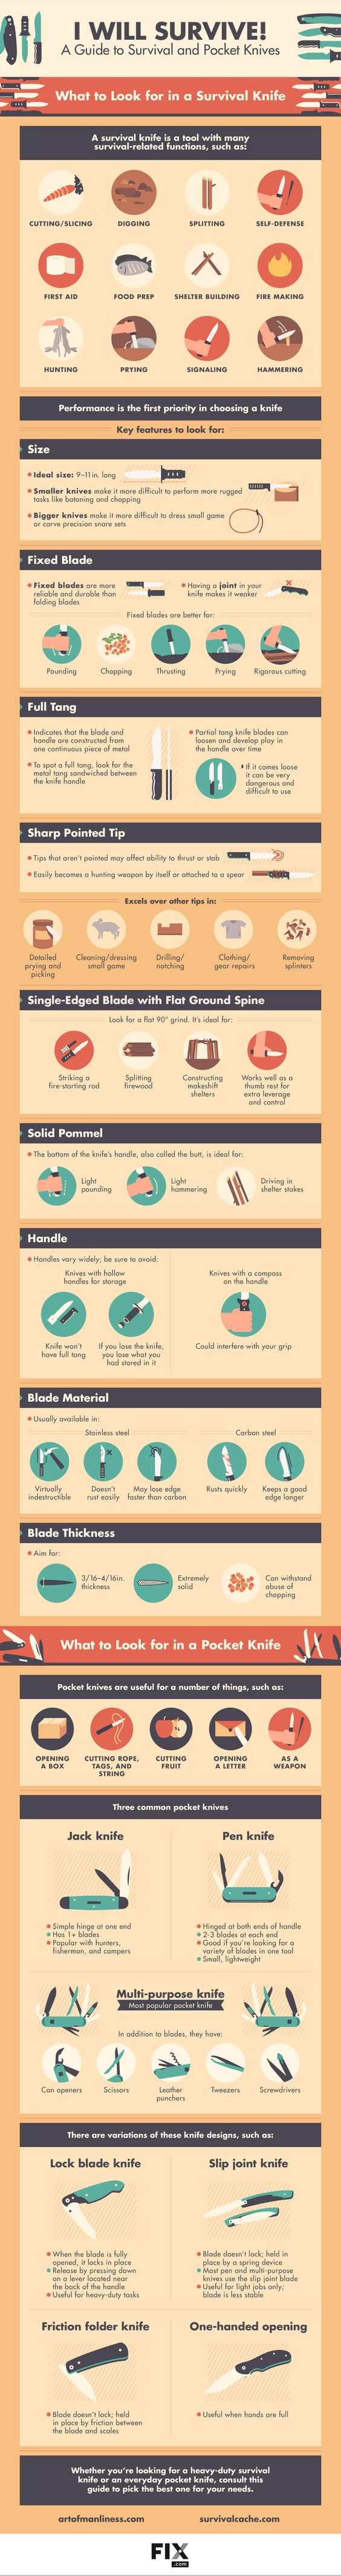 I Will Survive! A Guide to Survival and Pocket Knives #infographic #Knives #SurvivalKit